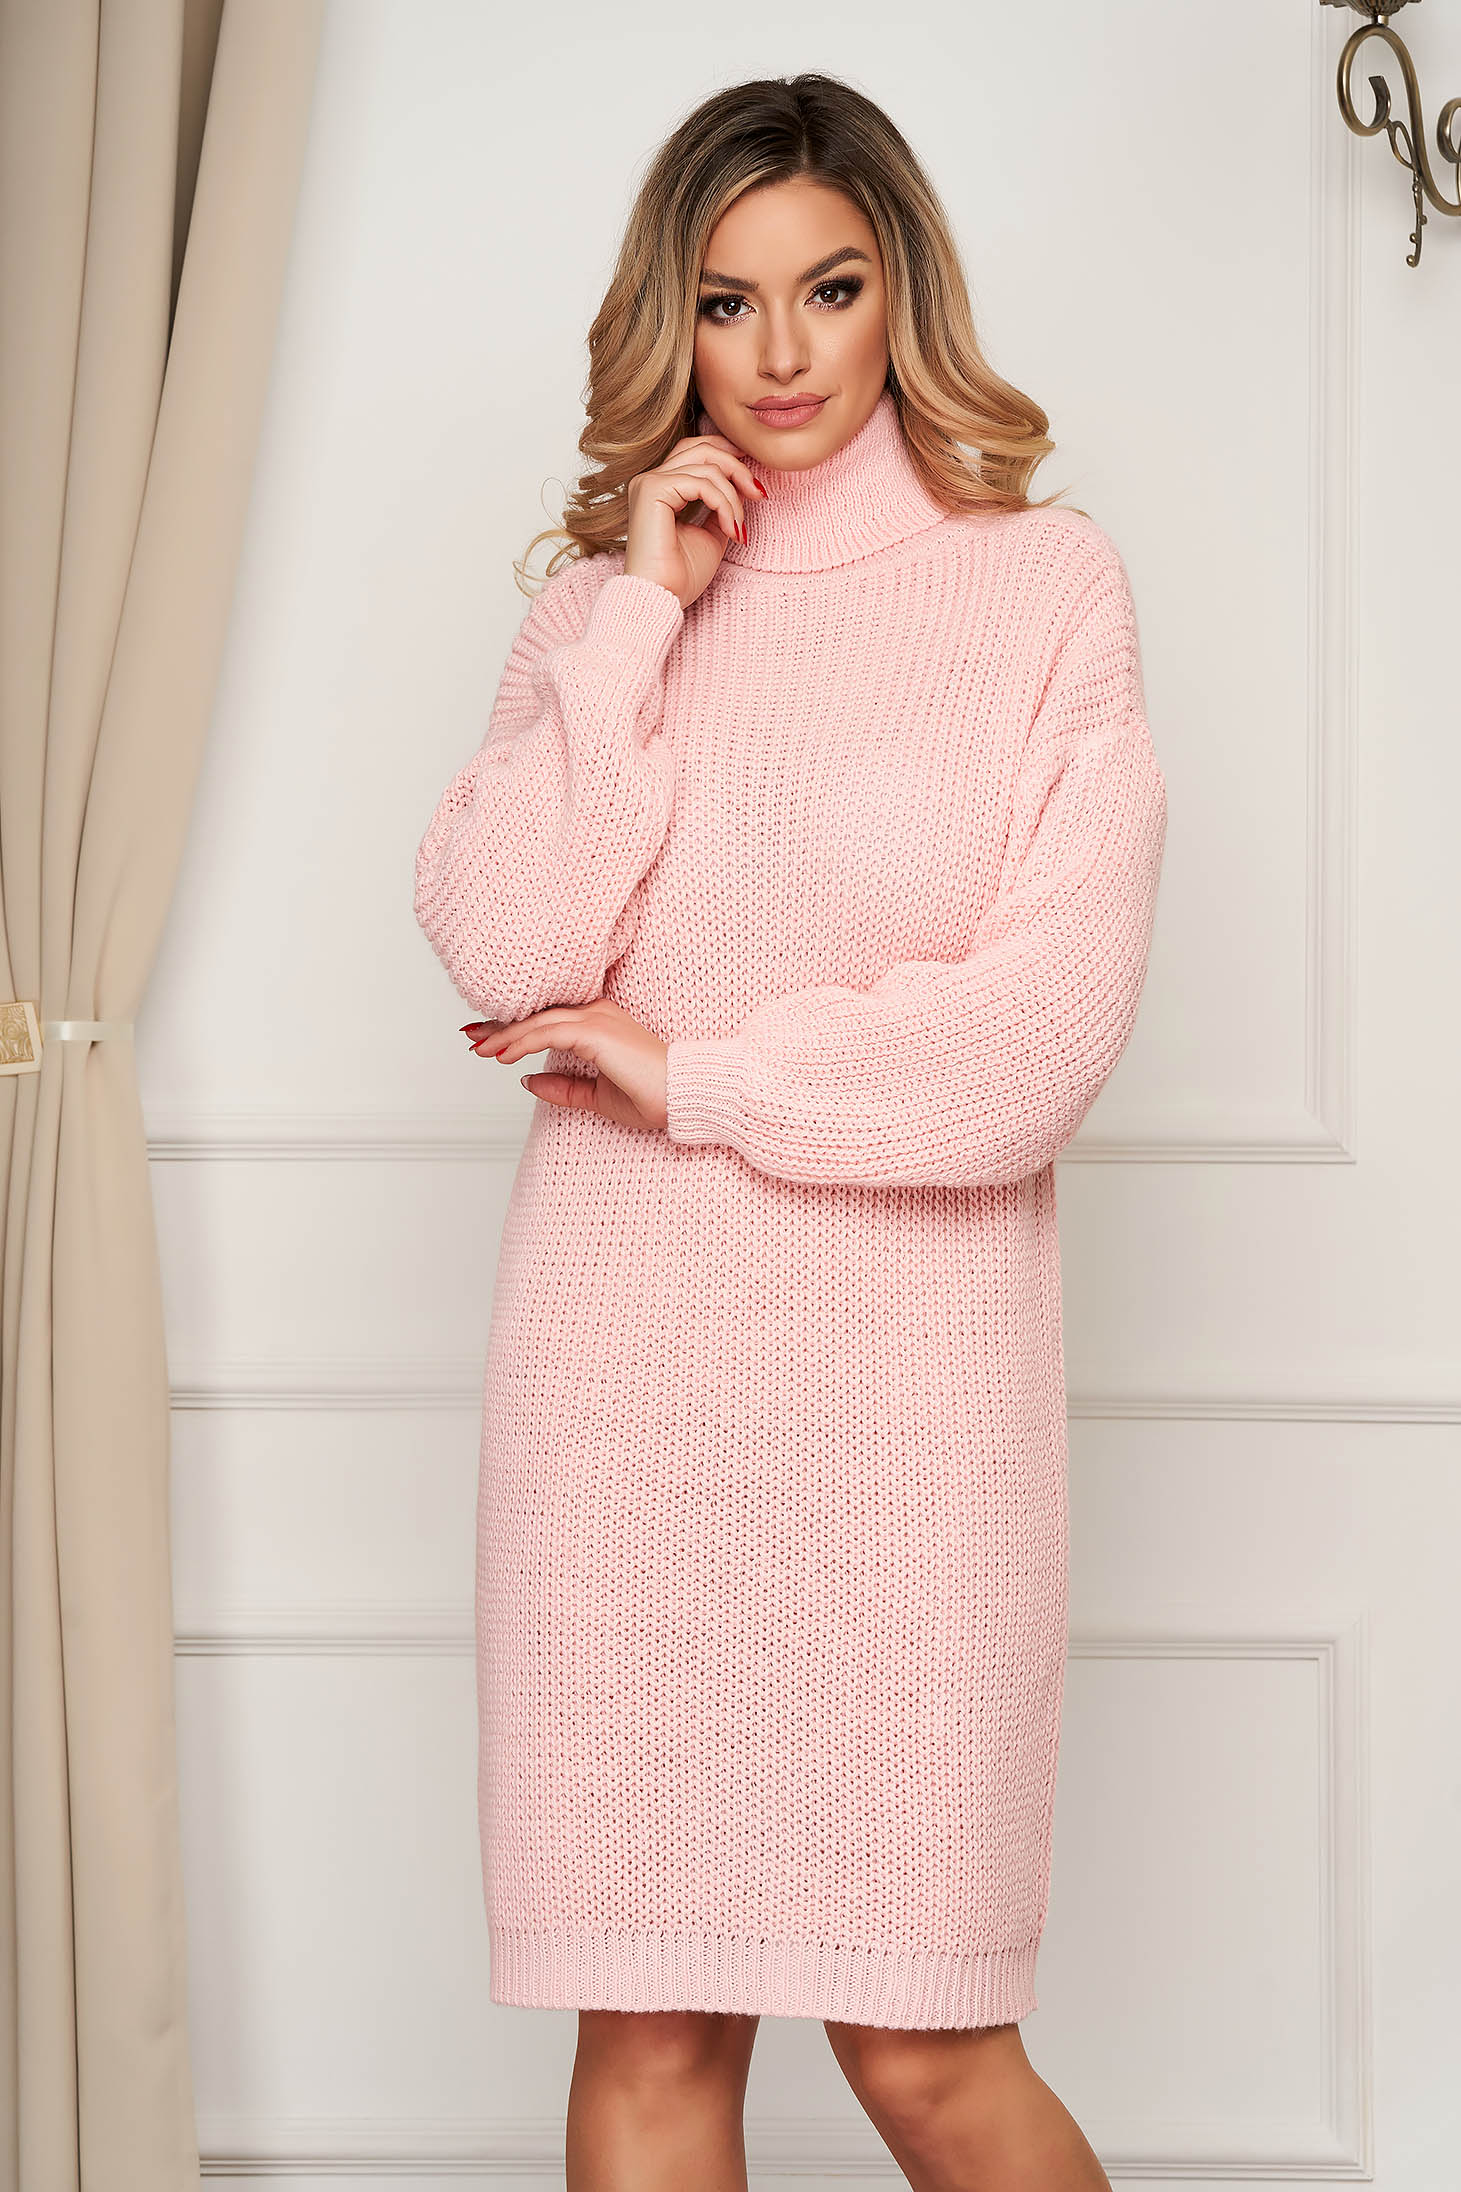 Lightpink dress with turtle neck knitted from elastic fabric flared